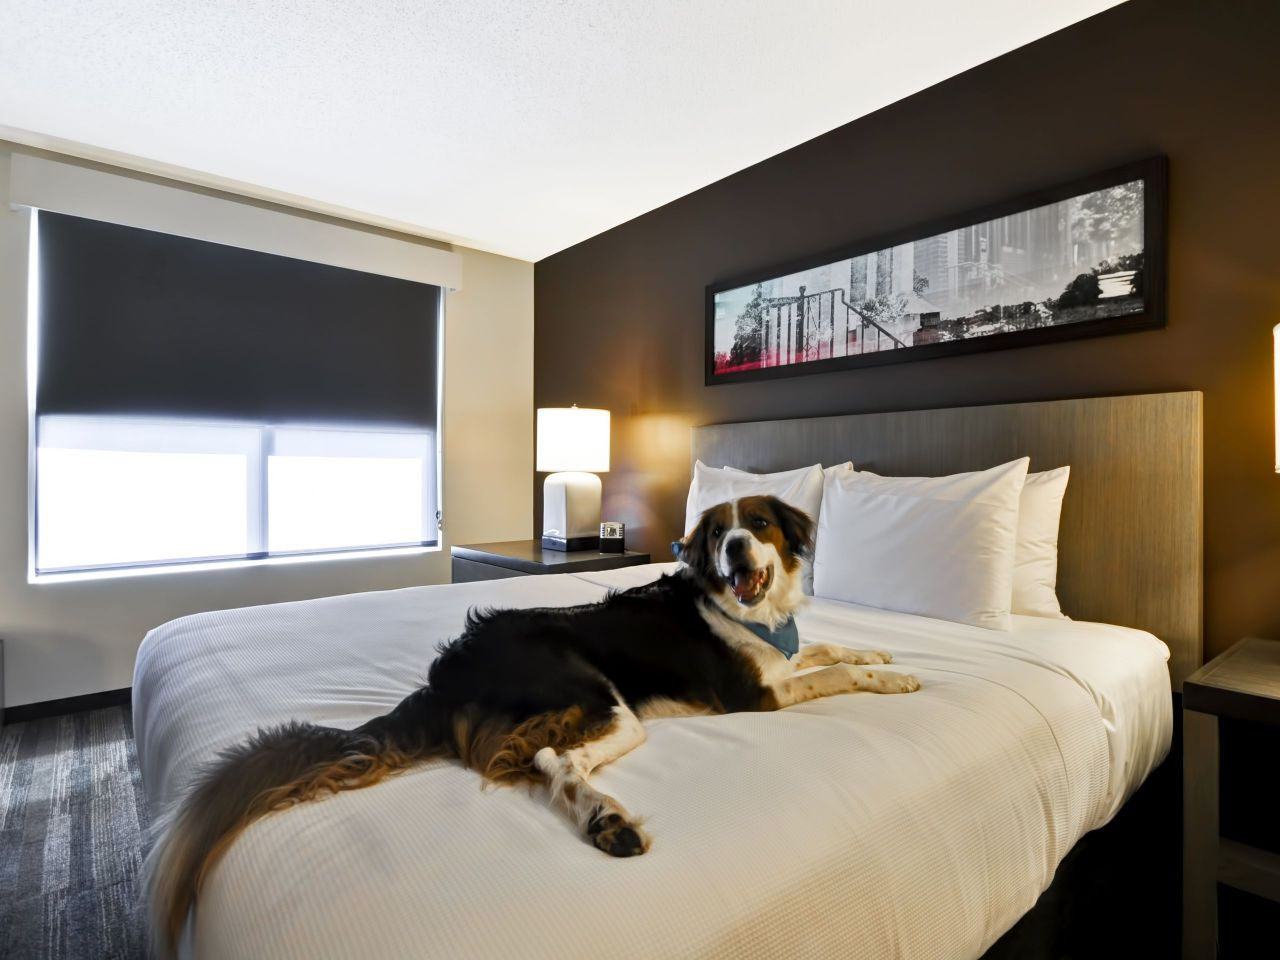 Hyatt Place Fort Lauderdale 17th St Convention Center Dog on the bed